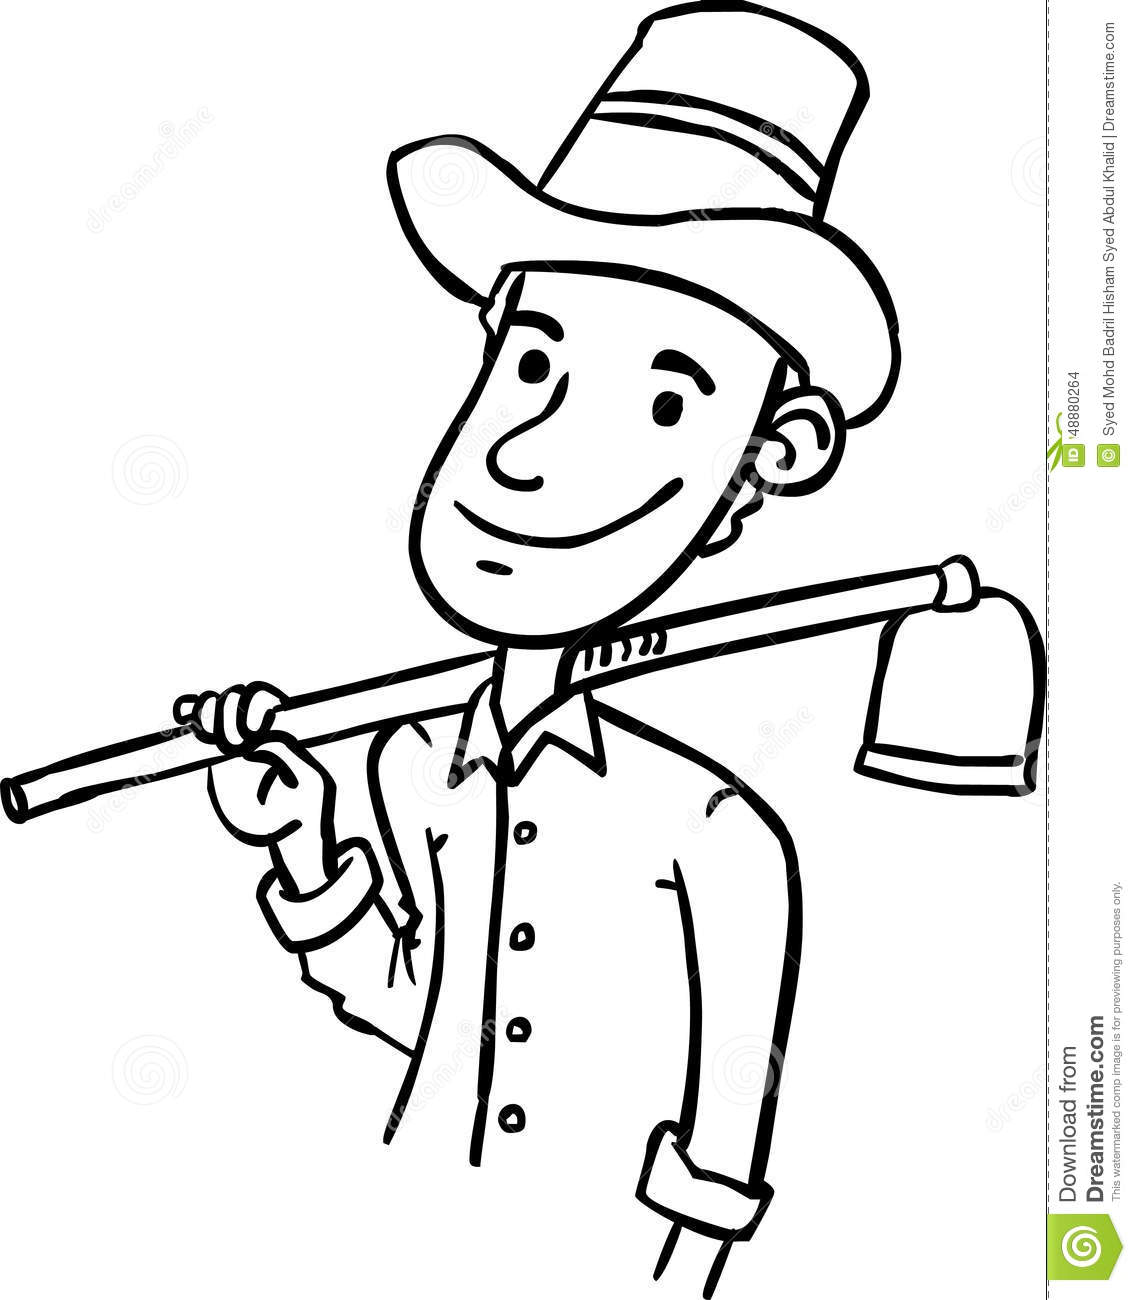 farmer with a pitch hoe in black and white line stroke.